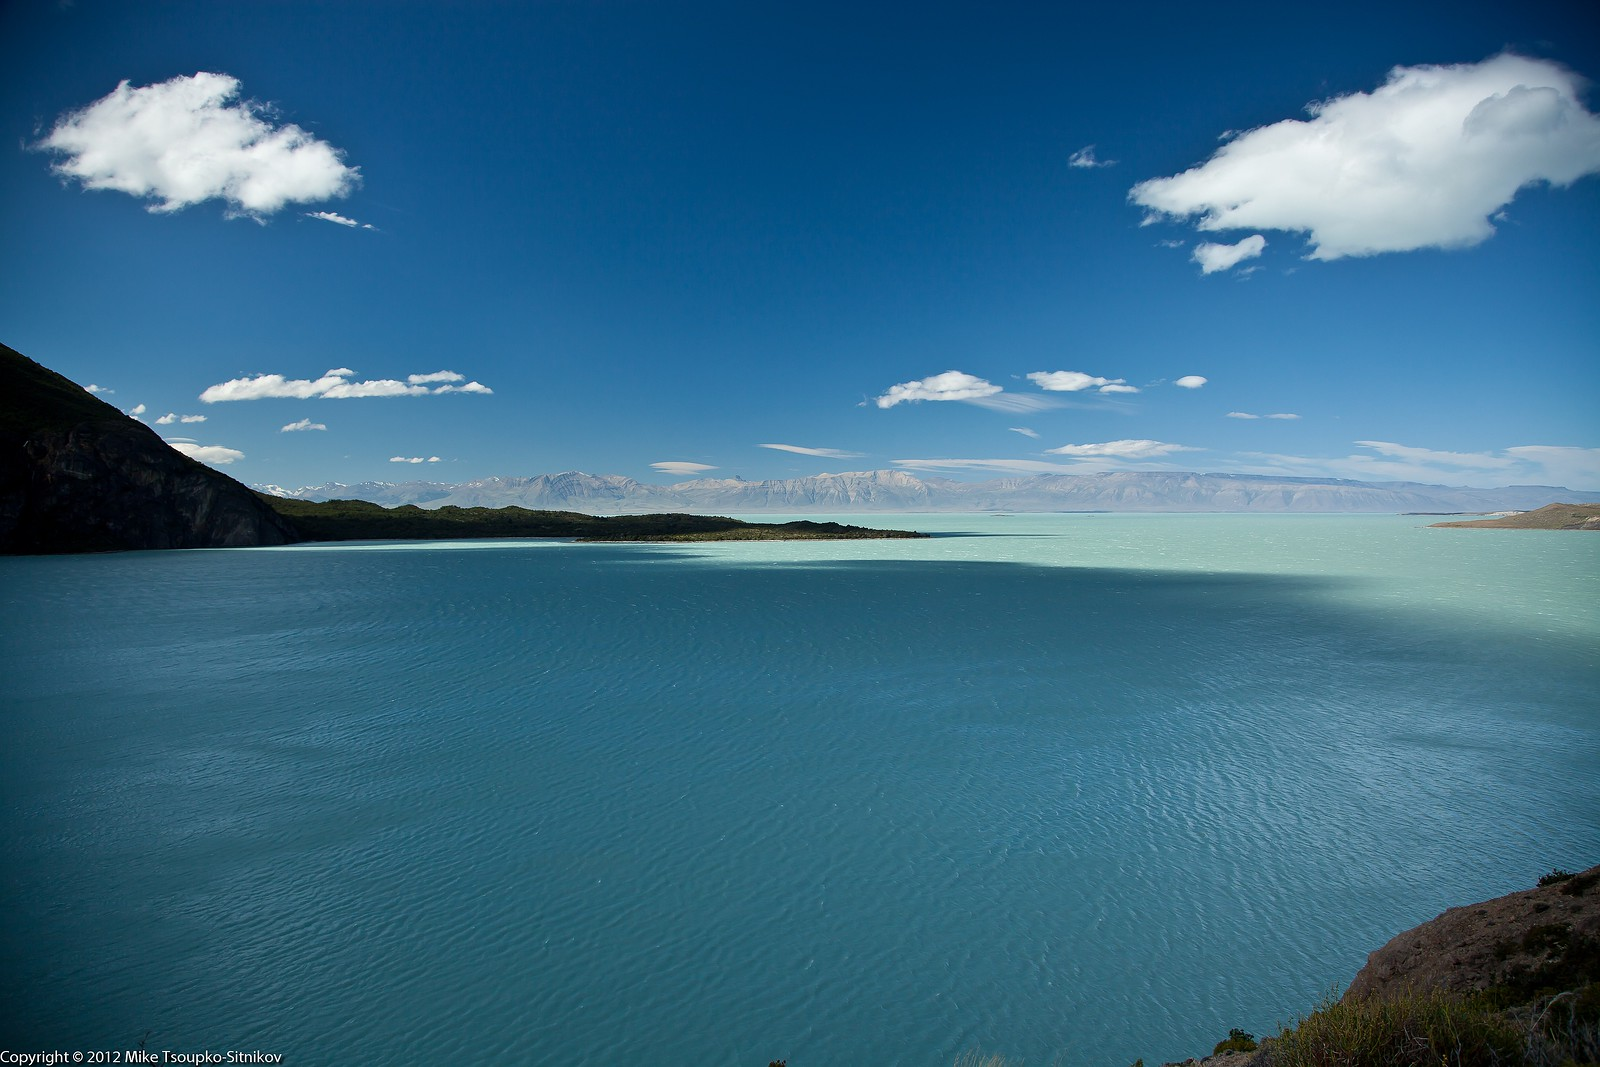 Lake Viedma - a view from Punta del Viento